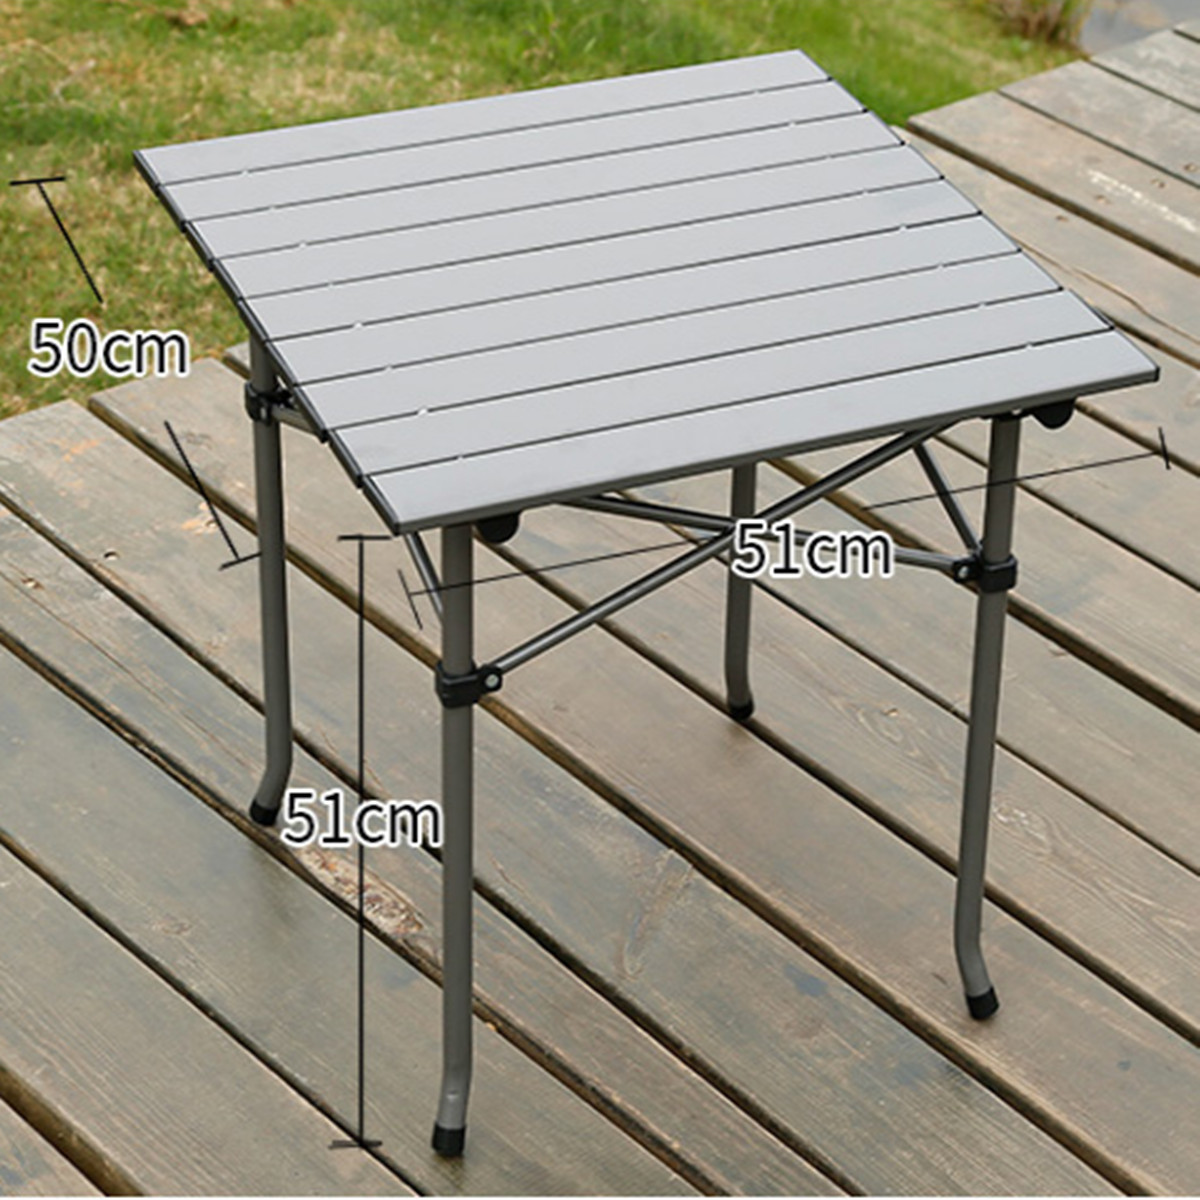 Outdoor Garden Portable Camping Picnic BBQ Hardware with Folding Table Chair Stools Set